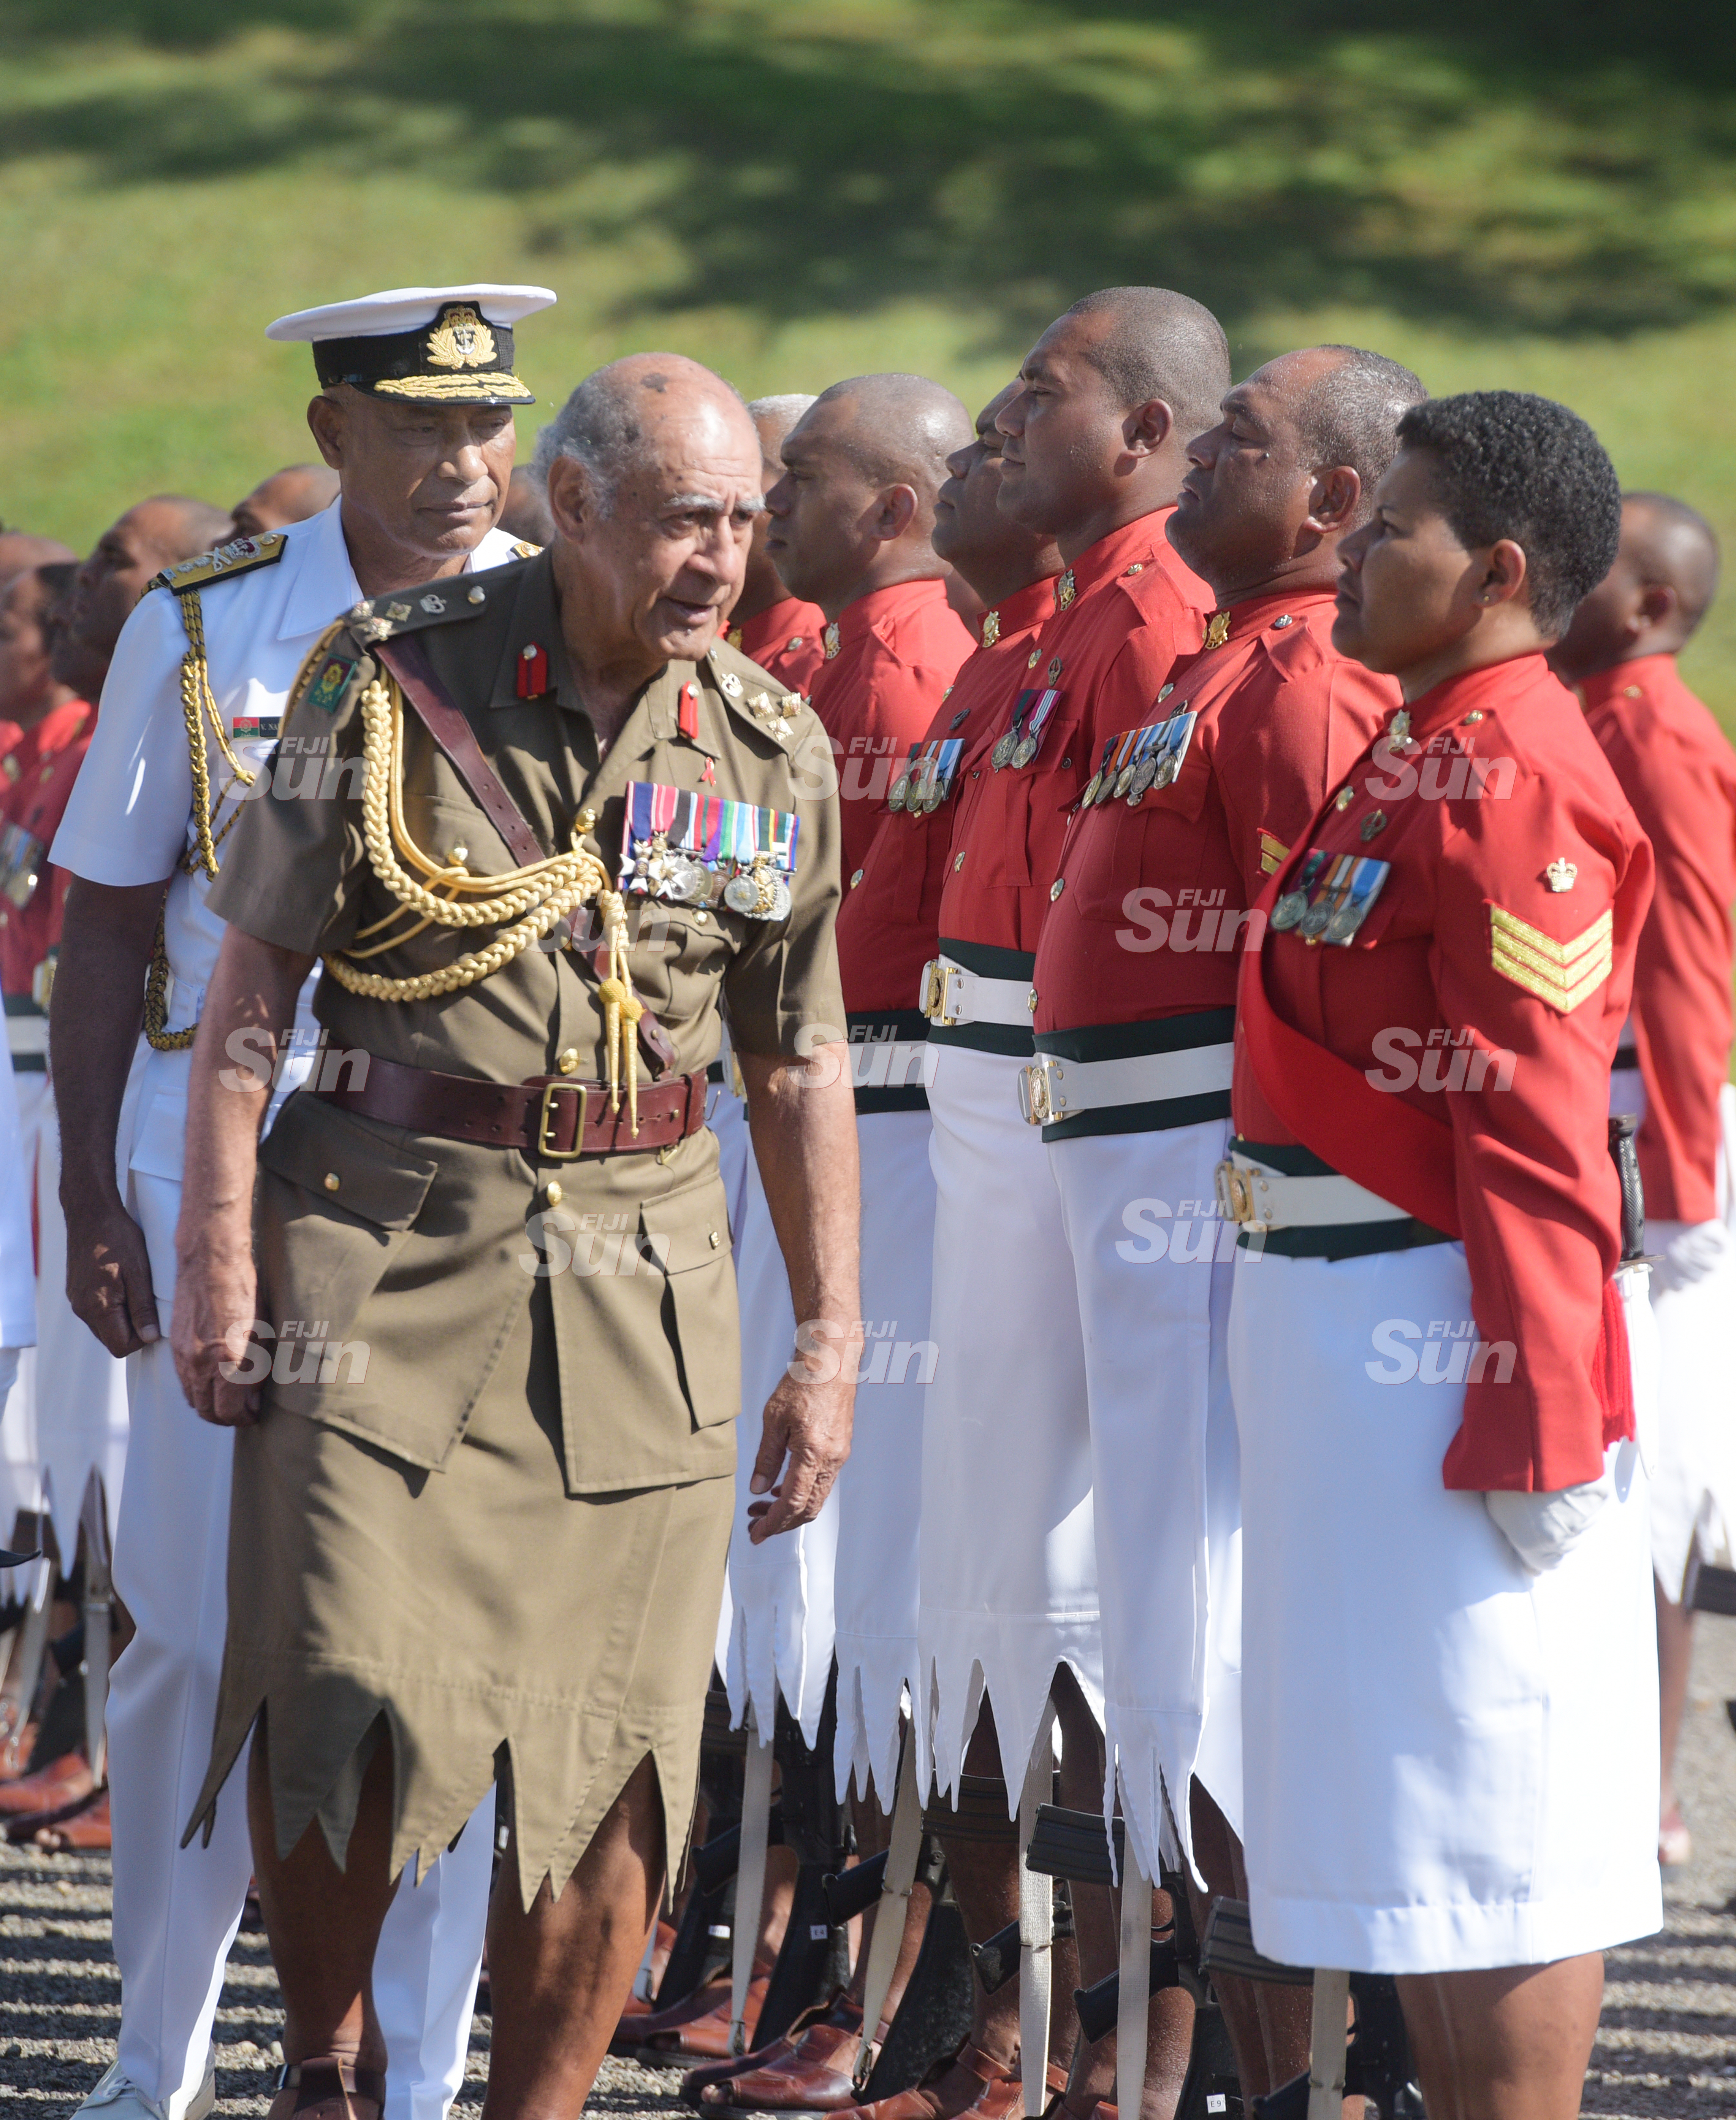 Brigadier General (Retired) Ratu Epeli Nailatikau to inspect the 50 men regimental guard of honour at Queen Elizabeth Barracks during inauguration of the Colonel of the Regiment on July 21, 2020. Photo: Ronald Kumar.